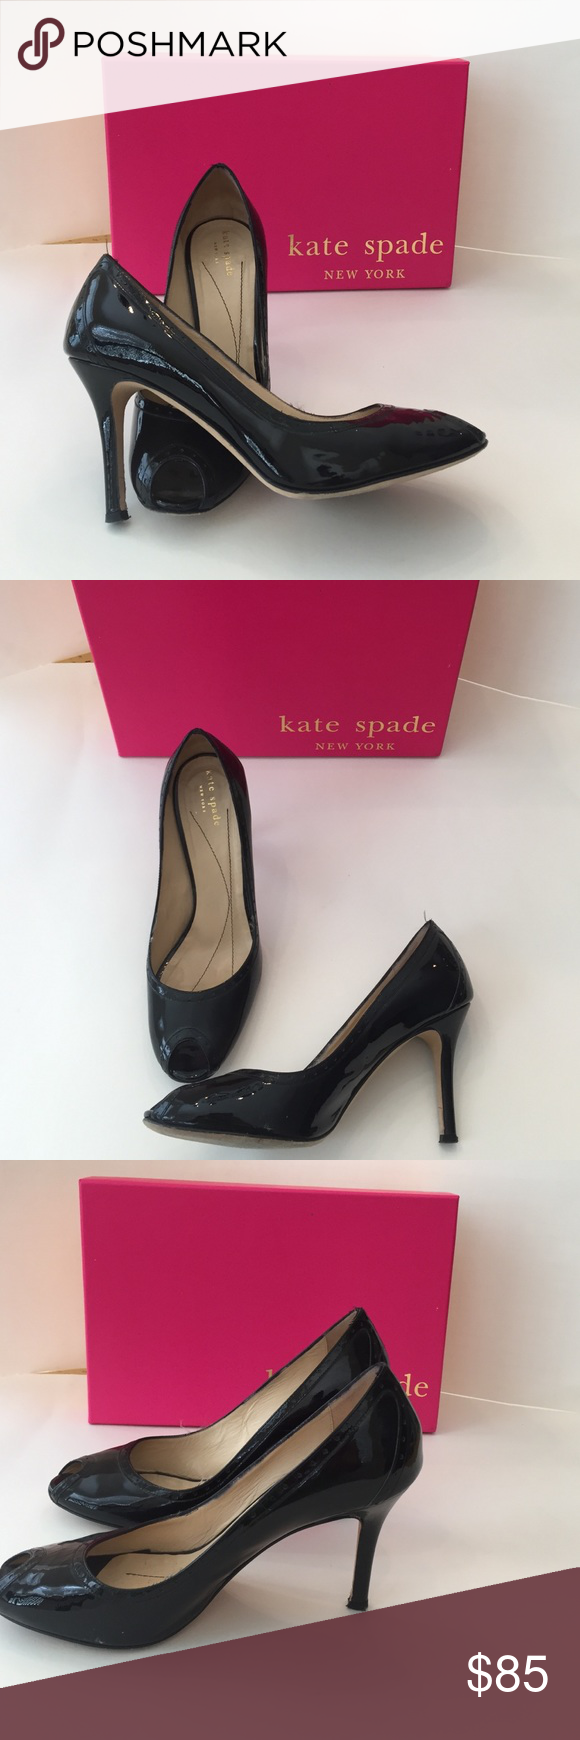 Kate Spade♣️ Peep Toe Heels Size 8 1/2, women's black patent heels‼️ 3 1/2 inch heels! Slightly worn and in great condition! Box not included!! Comment for more information kate spade Shoes Heels